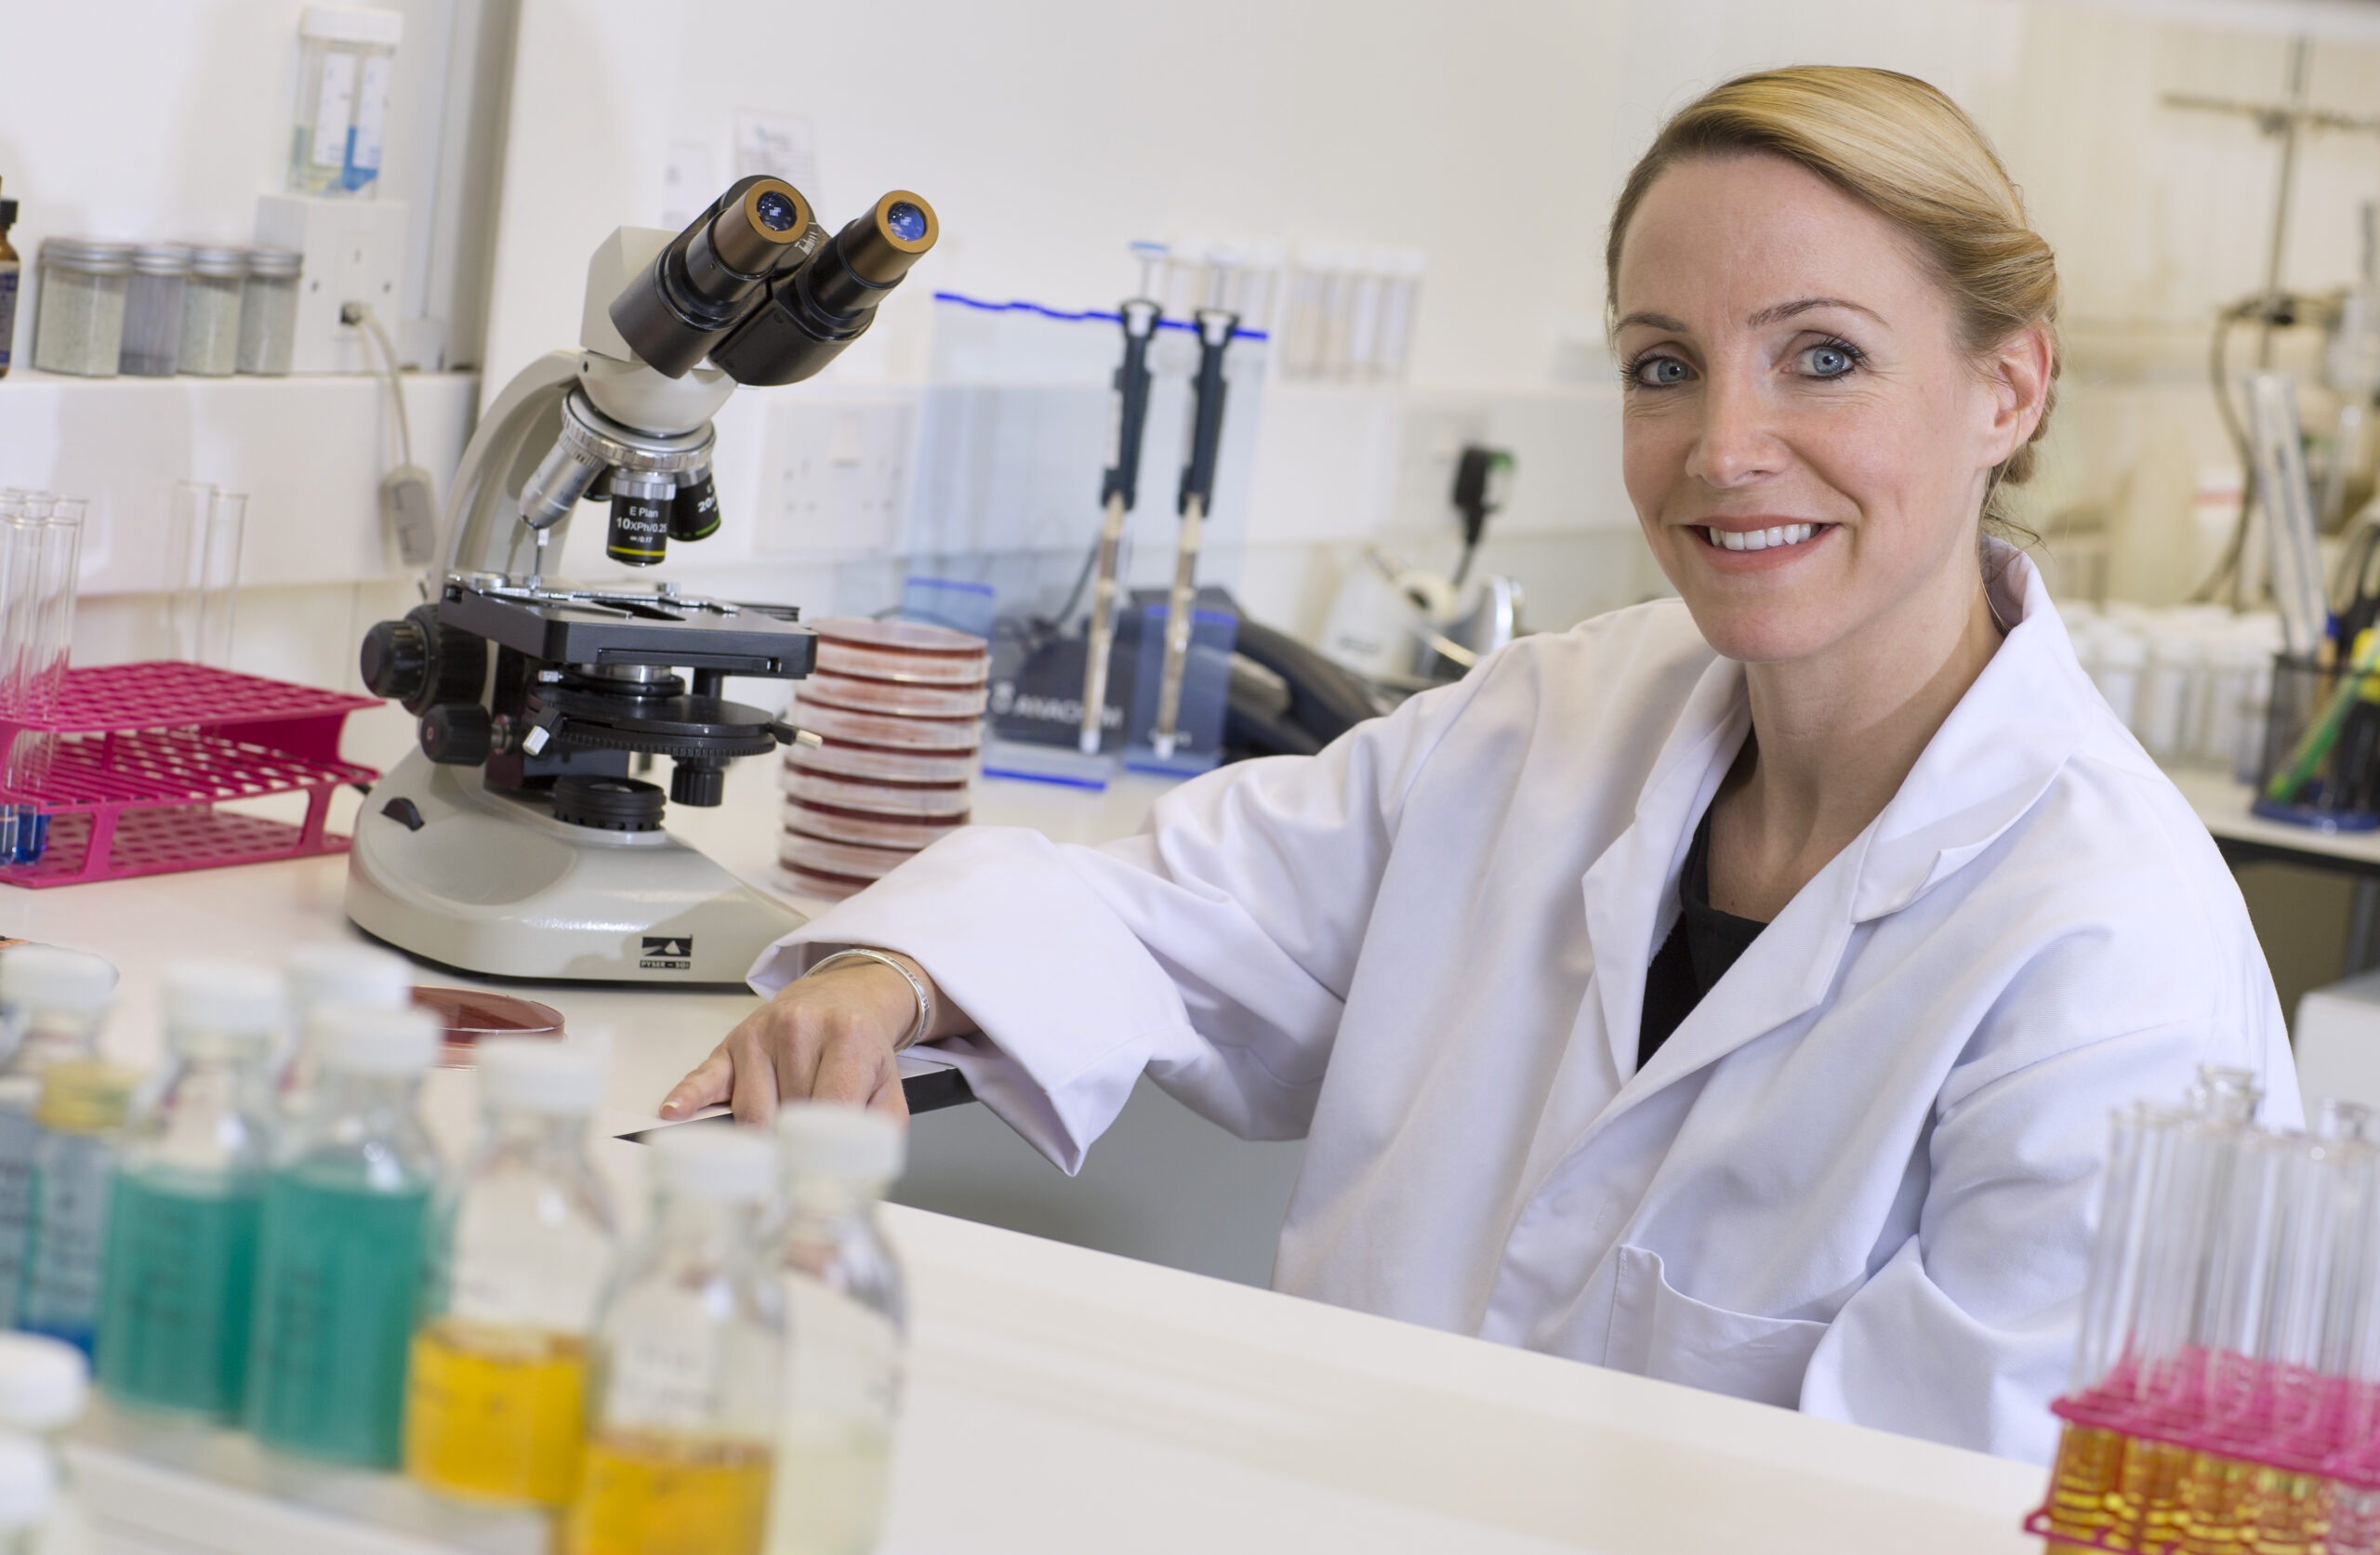 Double the success for Genesis Biosciences at the inaugural Wales STEM Awards